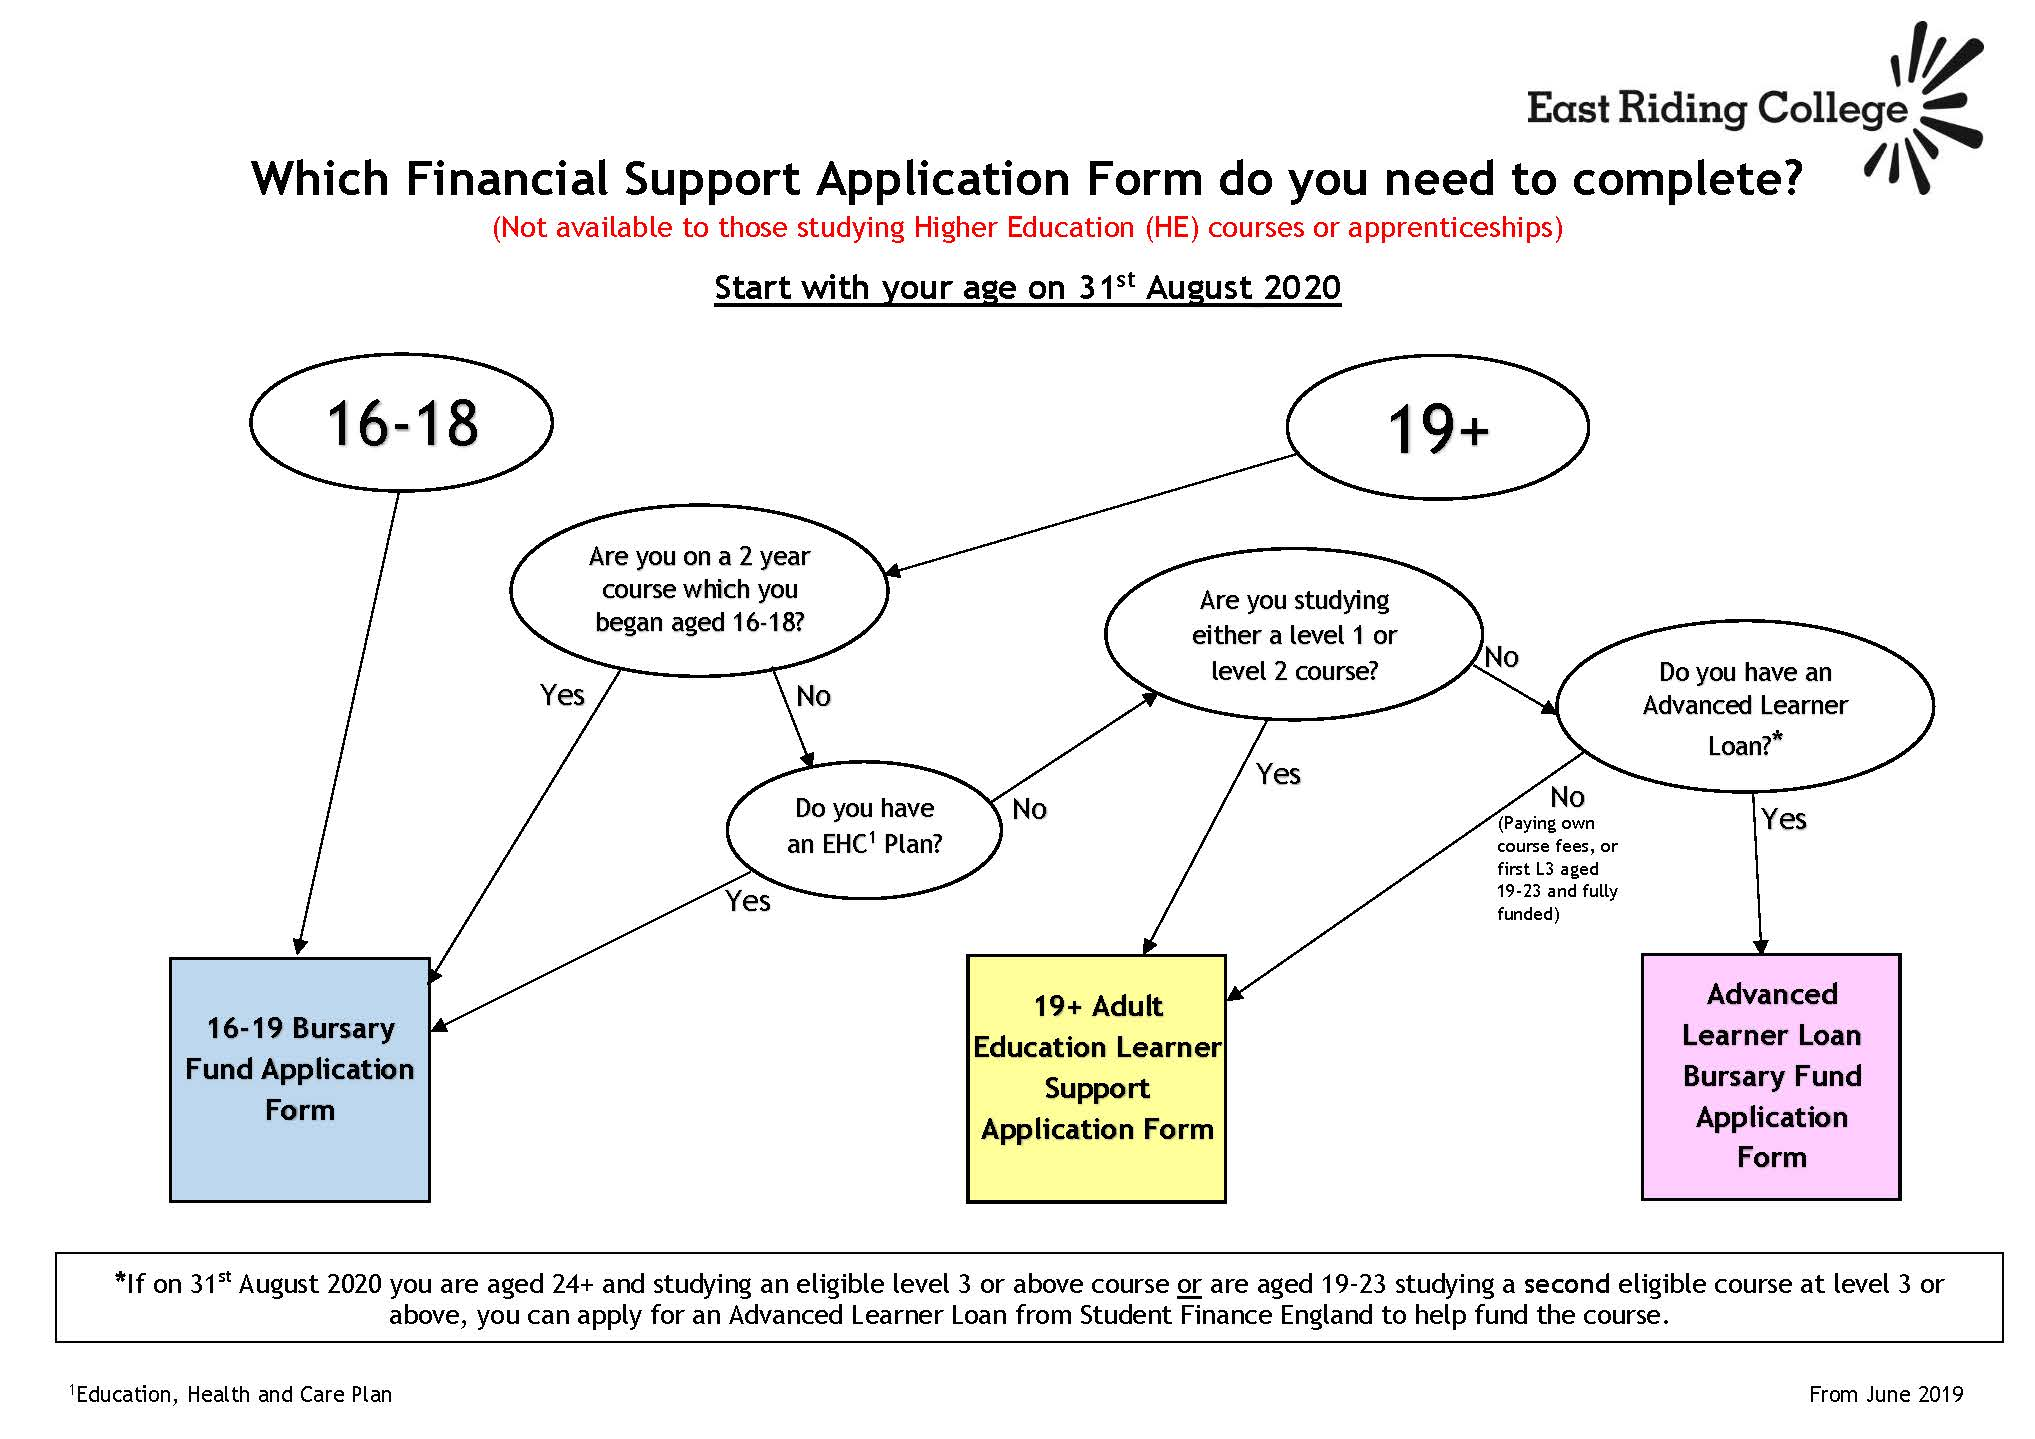 flow chart of financial application process